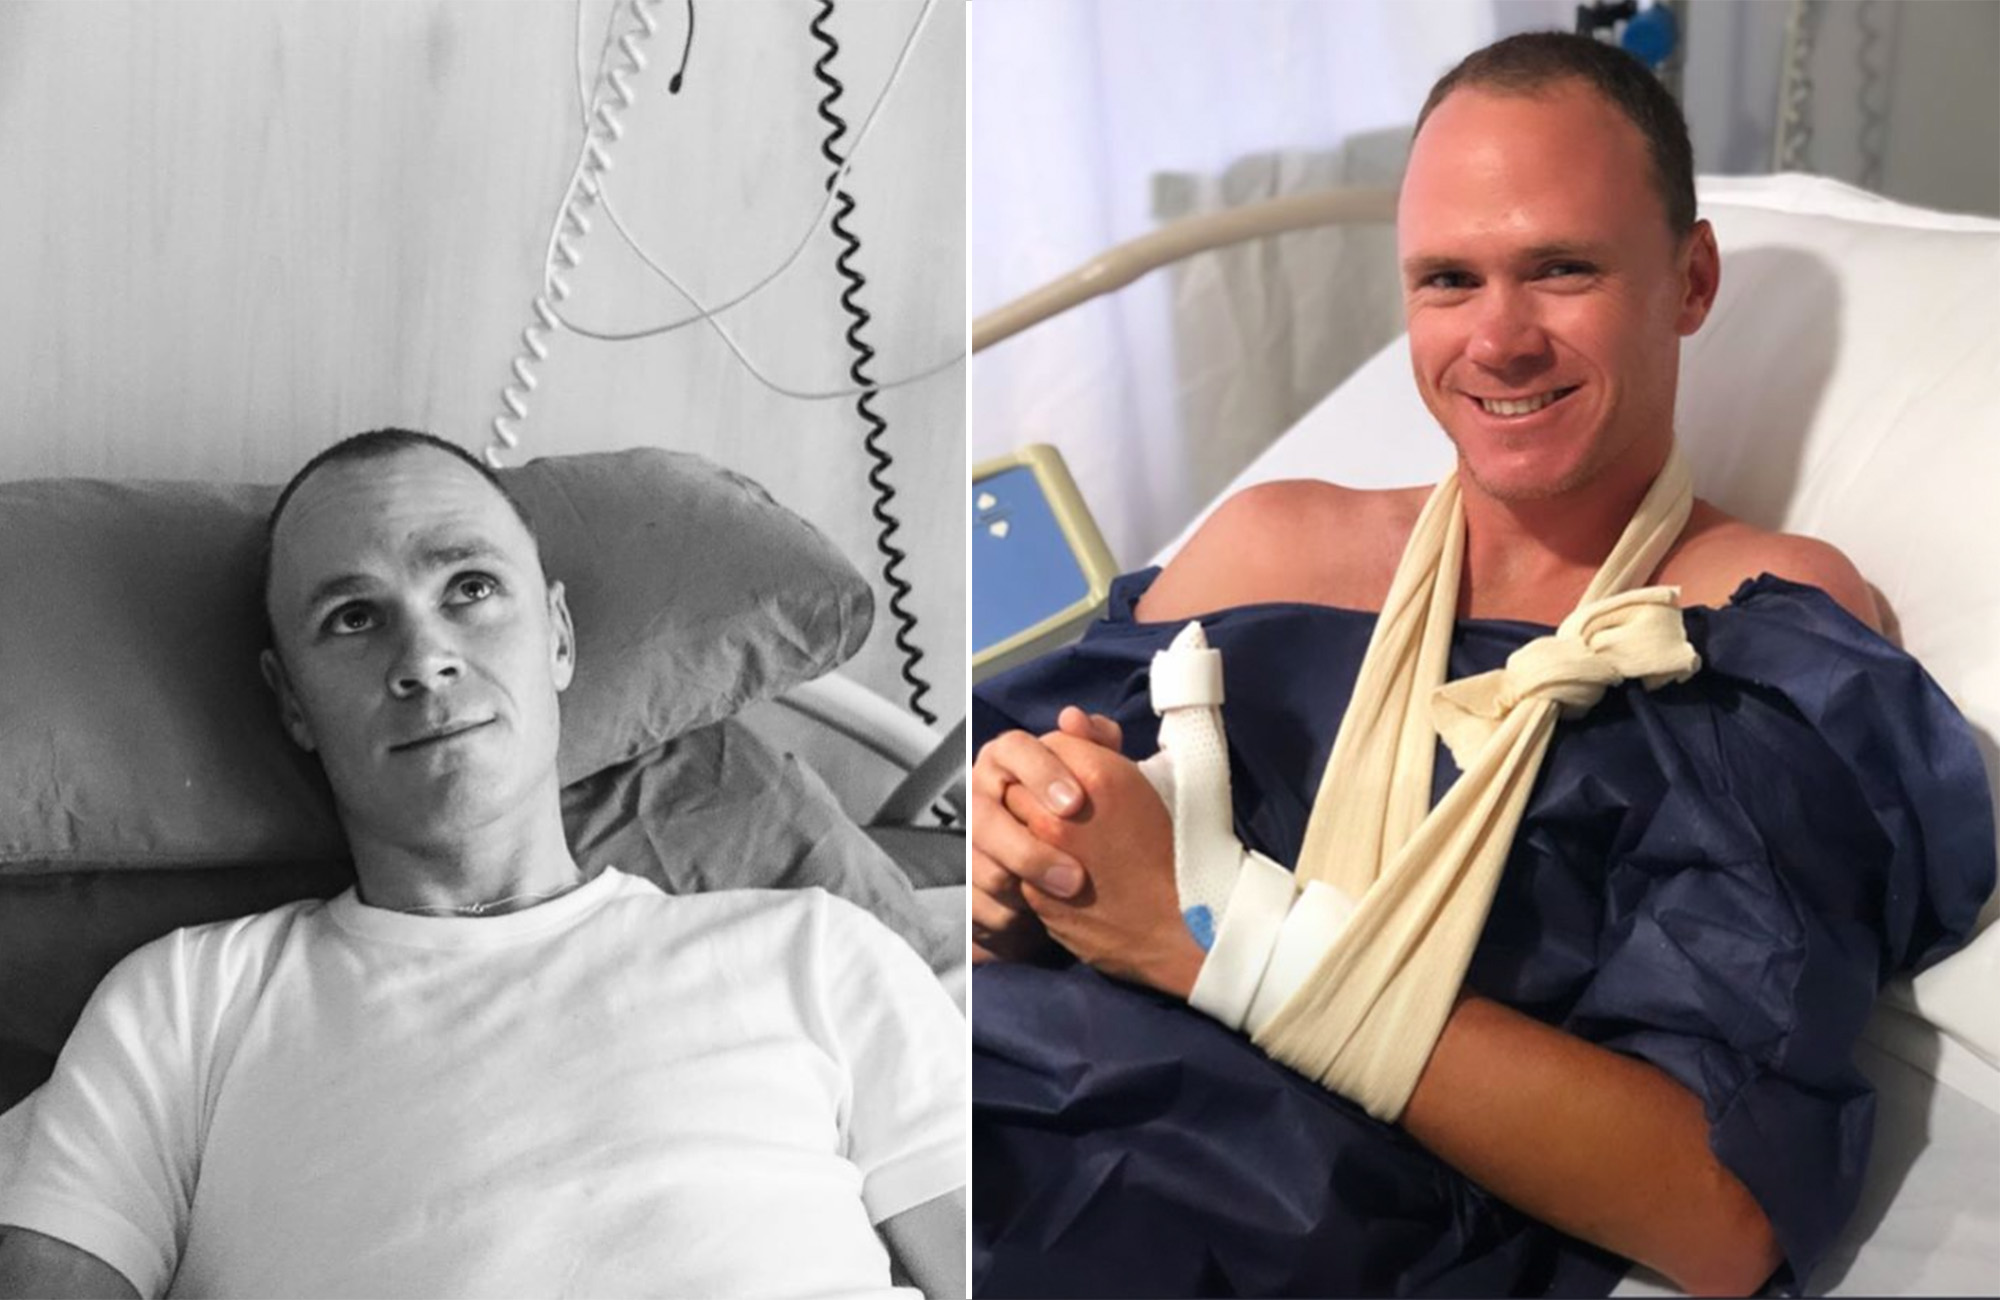 Chris Froome back in hospital following kitchen knife accident